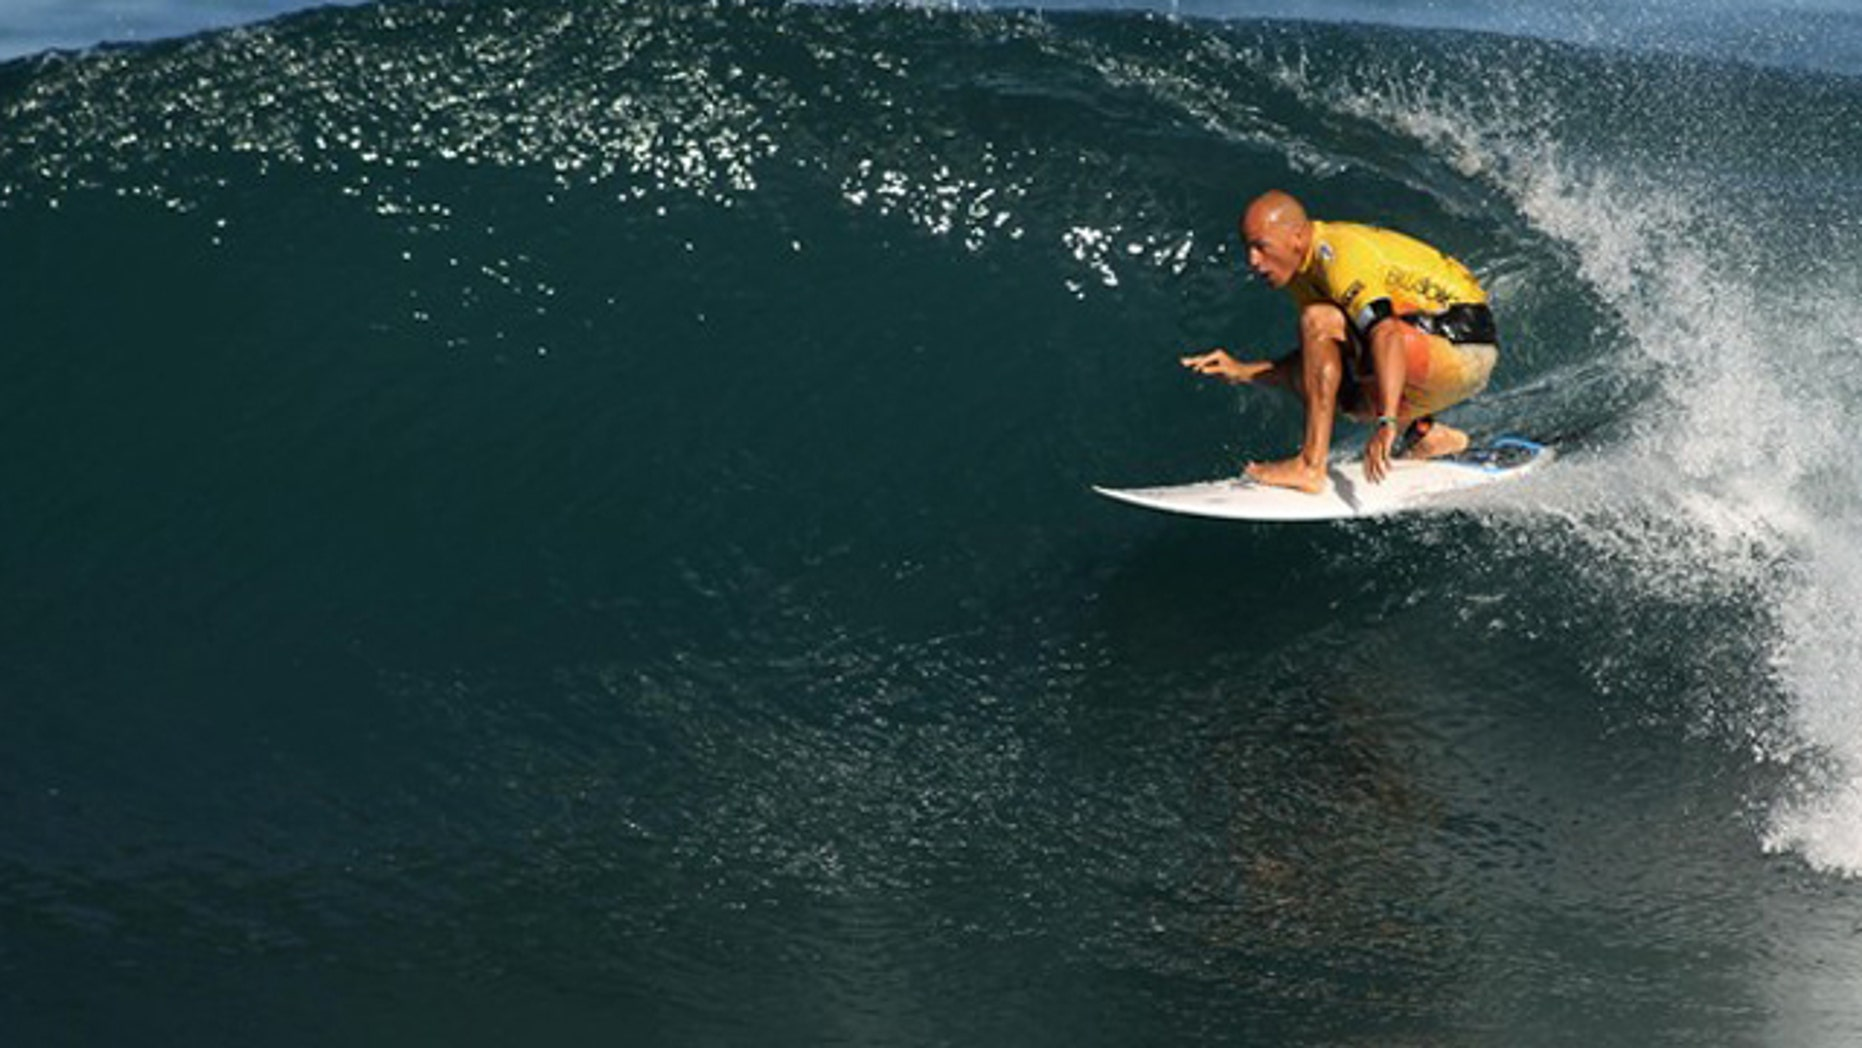 Dec. 15, 2012: ASP World Surfing Champion Kelly Slater of the U.S. competes during the 2010 Billabong Pipeline Masters at the Banzai Pipeline in Oahu, Hawaii.